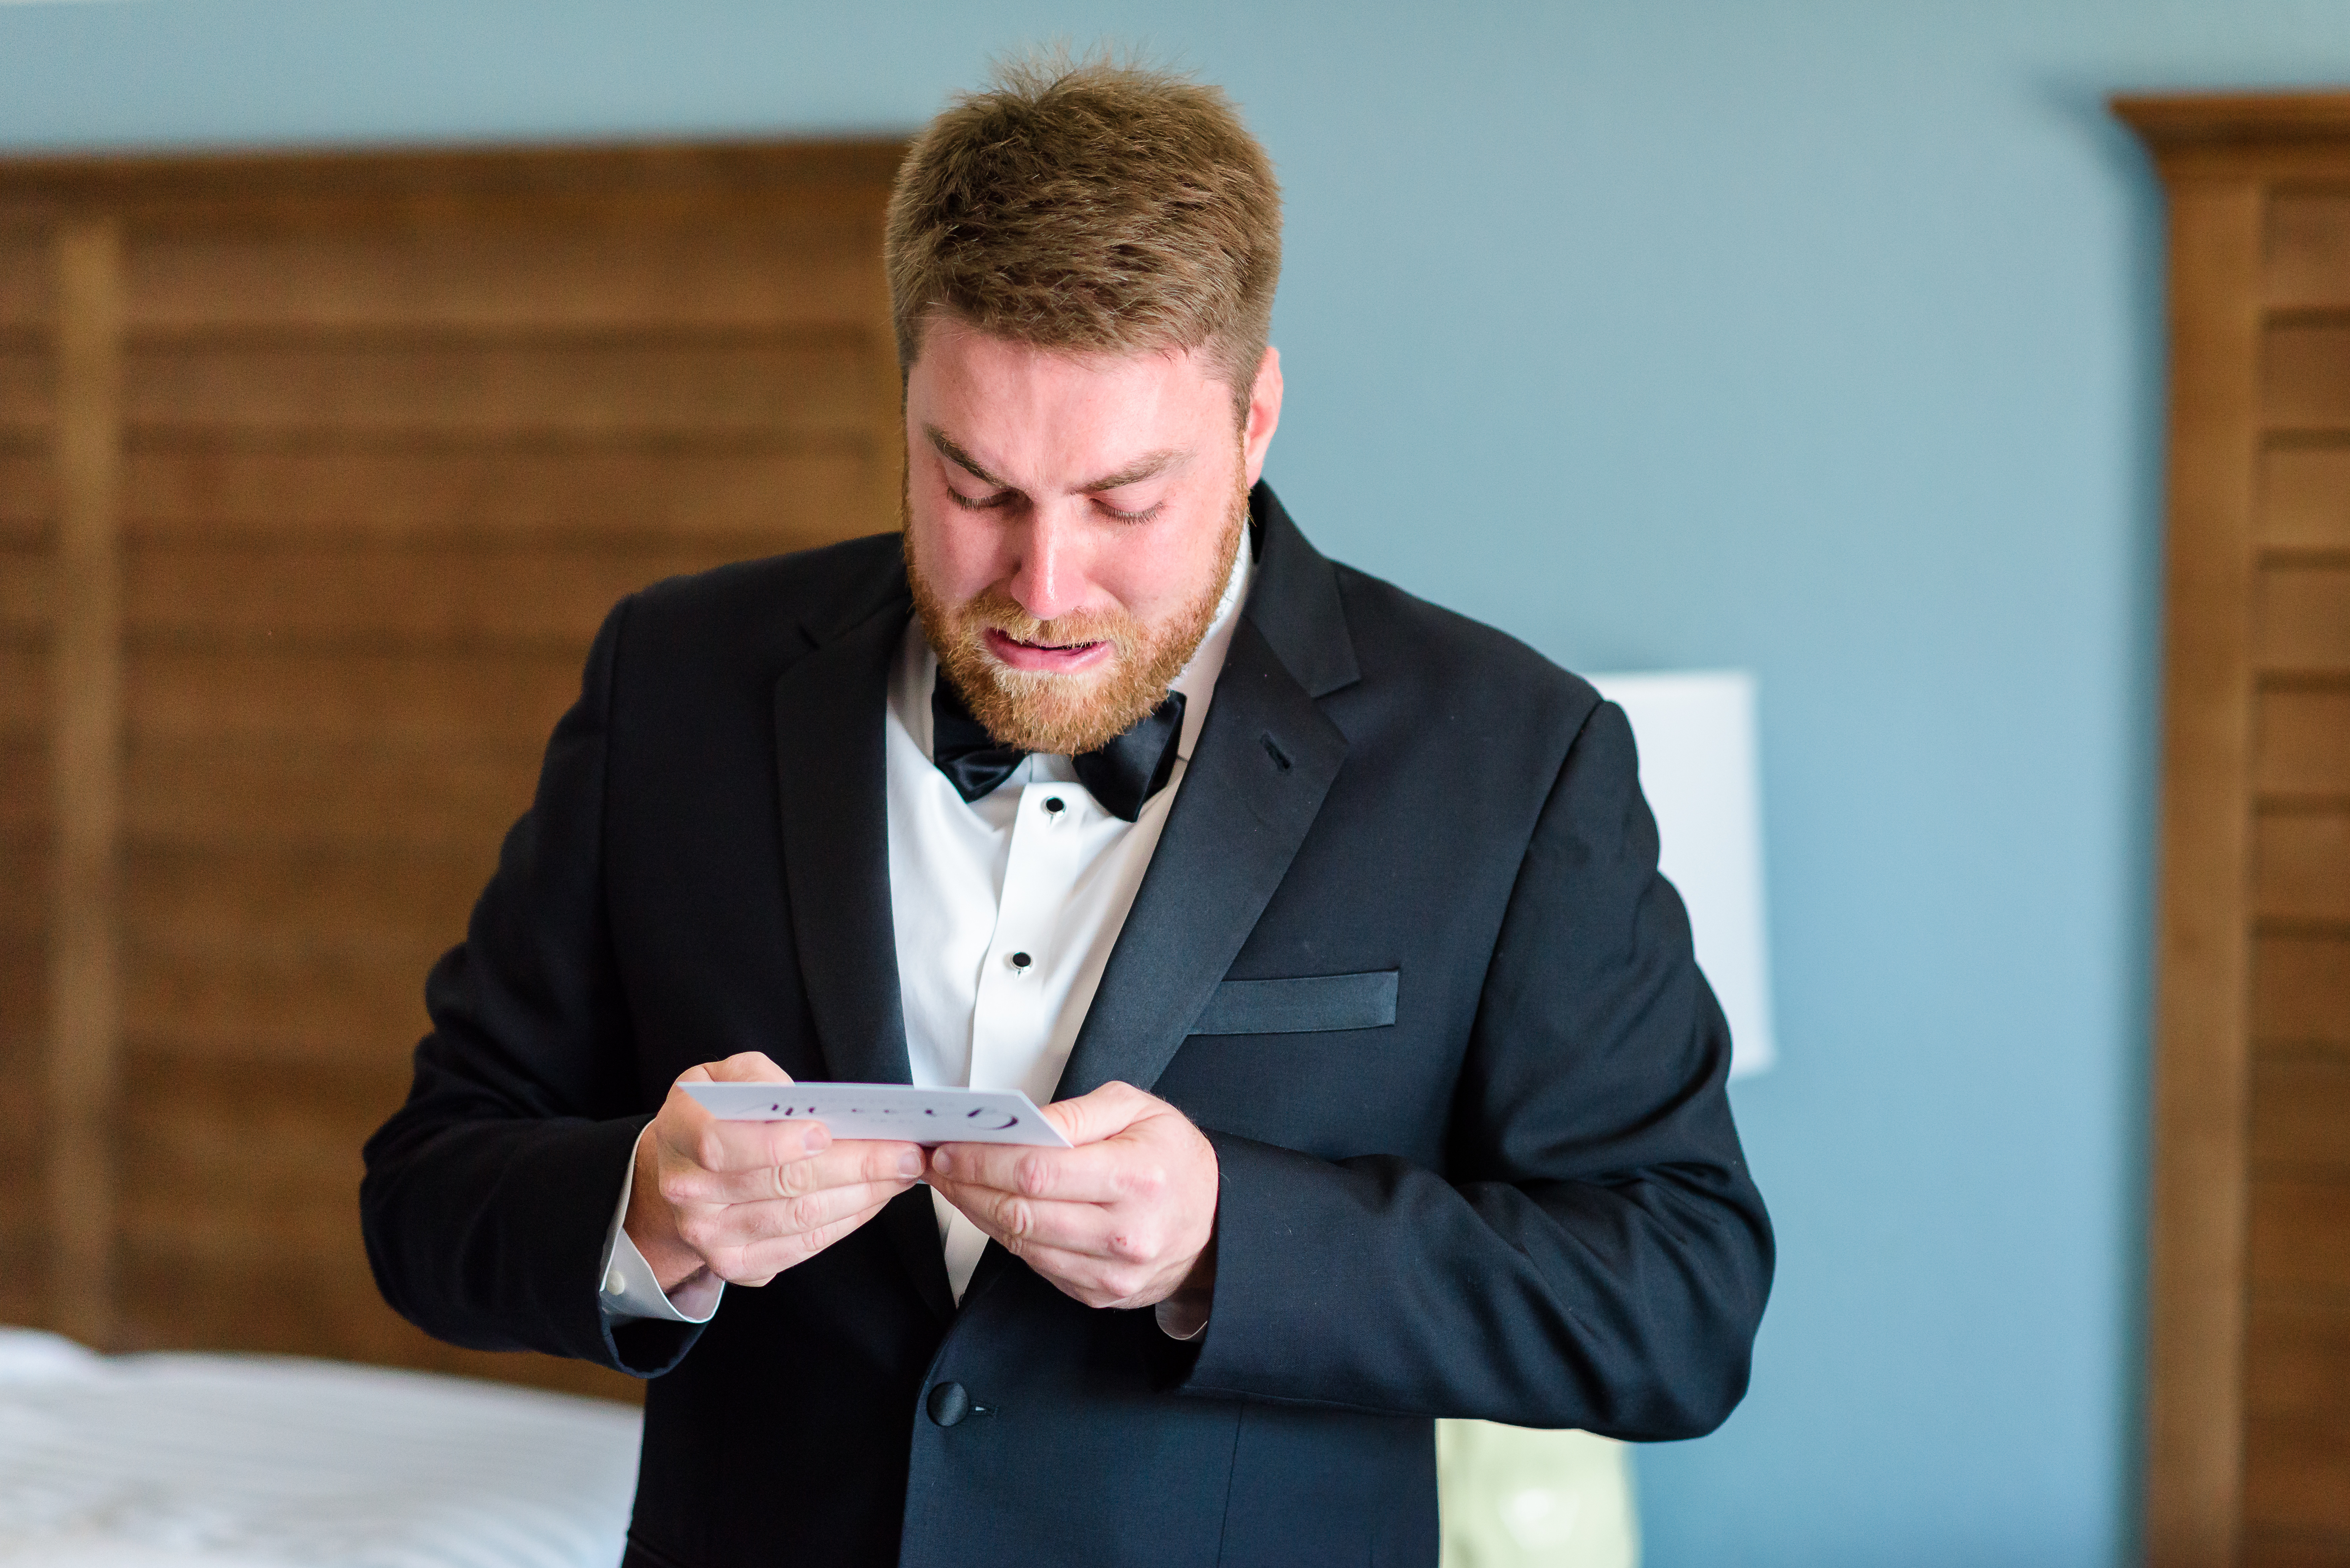 St Augustine Wedding Venue Emotional Groom